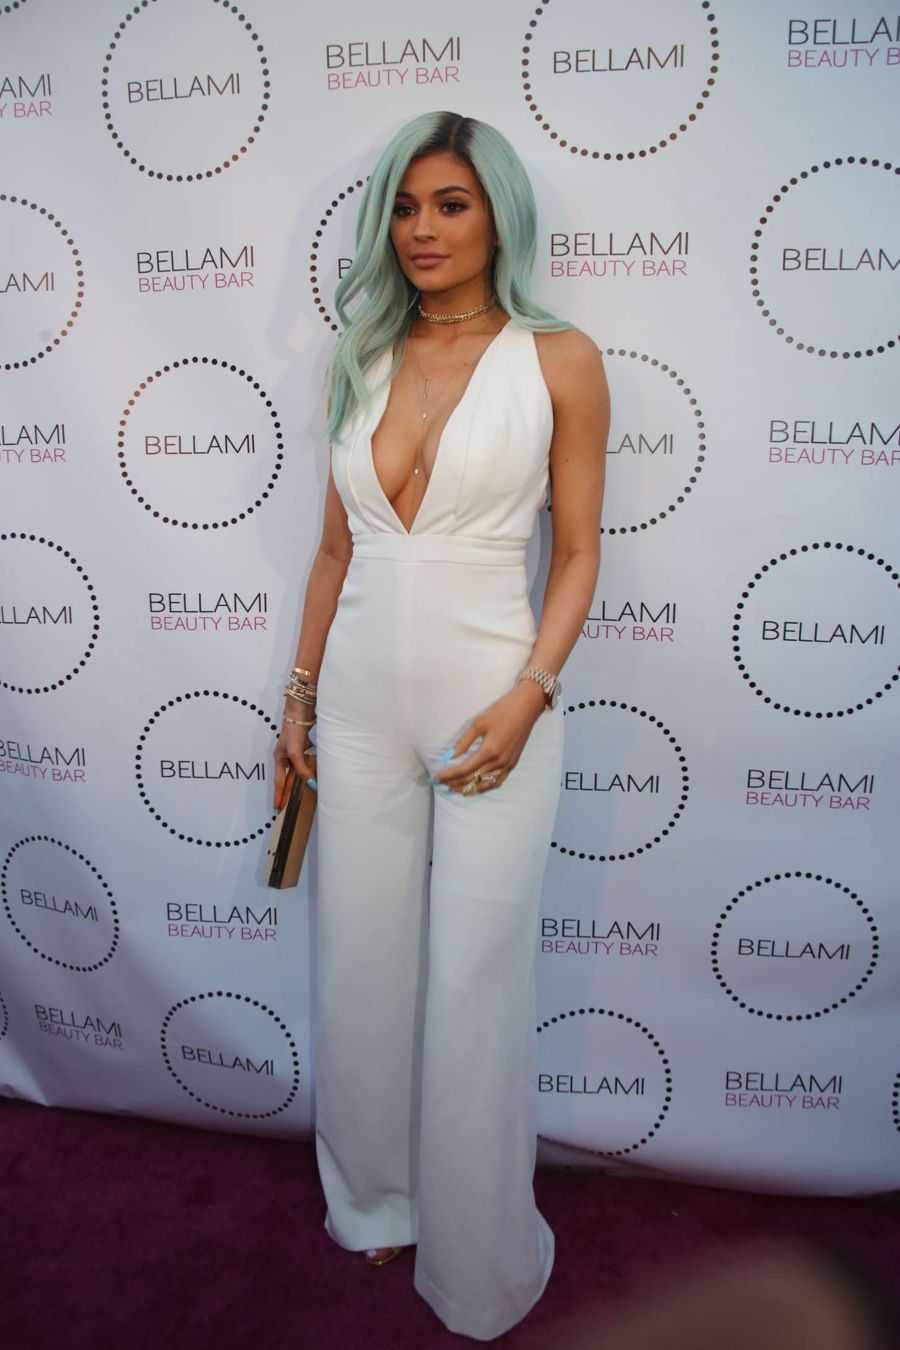 Kylie Jenner - Bellami Beauty Bar in West Hollywood - Page ...